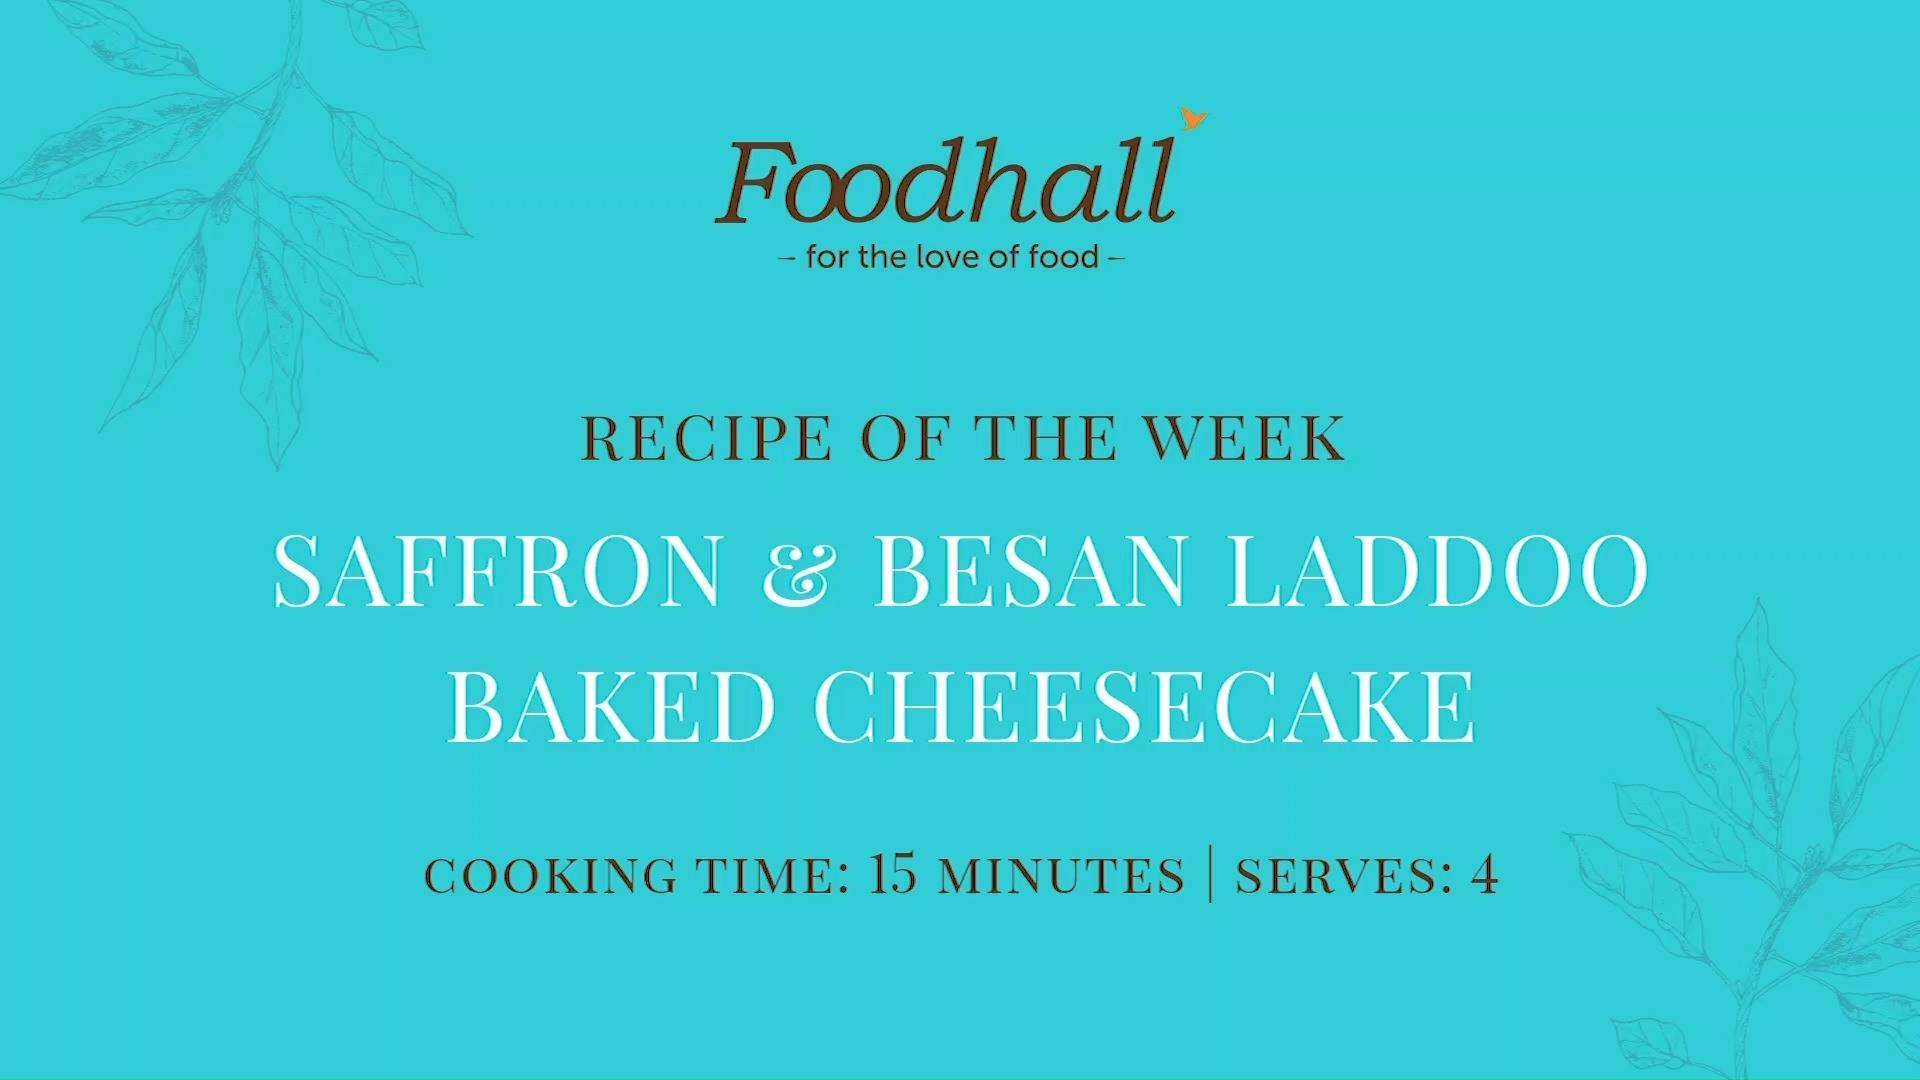 #RecipeoftheWeek: Saffron & Besan Laddoo Baked Cheesecake  We're embracing the spirit of the season by adding a modern twist to the quintessential Indian sweet, #laddoos! Perfect for wowing your guests at your next soirée, this delicious dessert strikes a creative harmony between two of our all-time favourite treats. Do tag us in your pictures if you try it at home!  #ForTheLoveofDesserts #LaddooCheesecake #FoodhallIndia #DessertTime #CheesecakeRecipe #IndianDesserts #RecipeShare